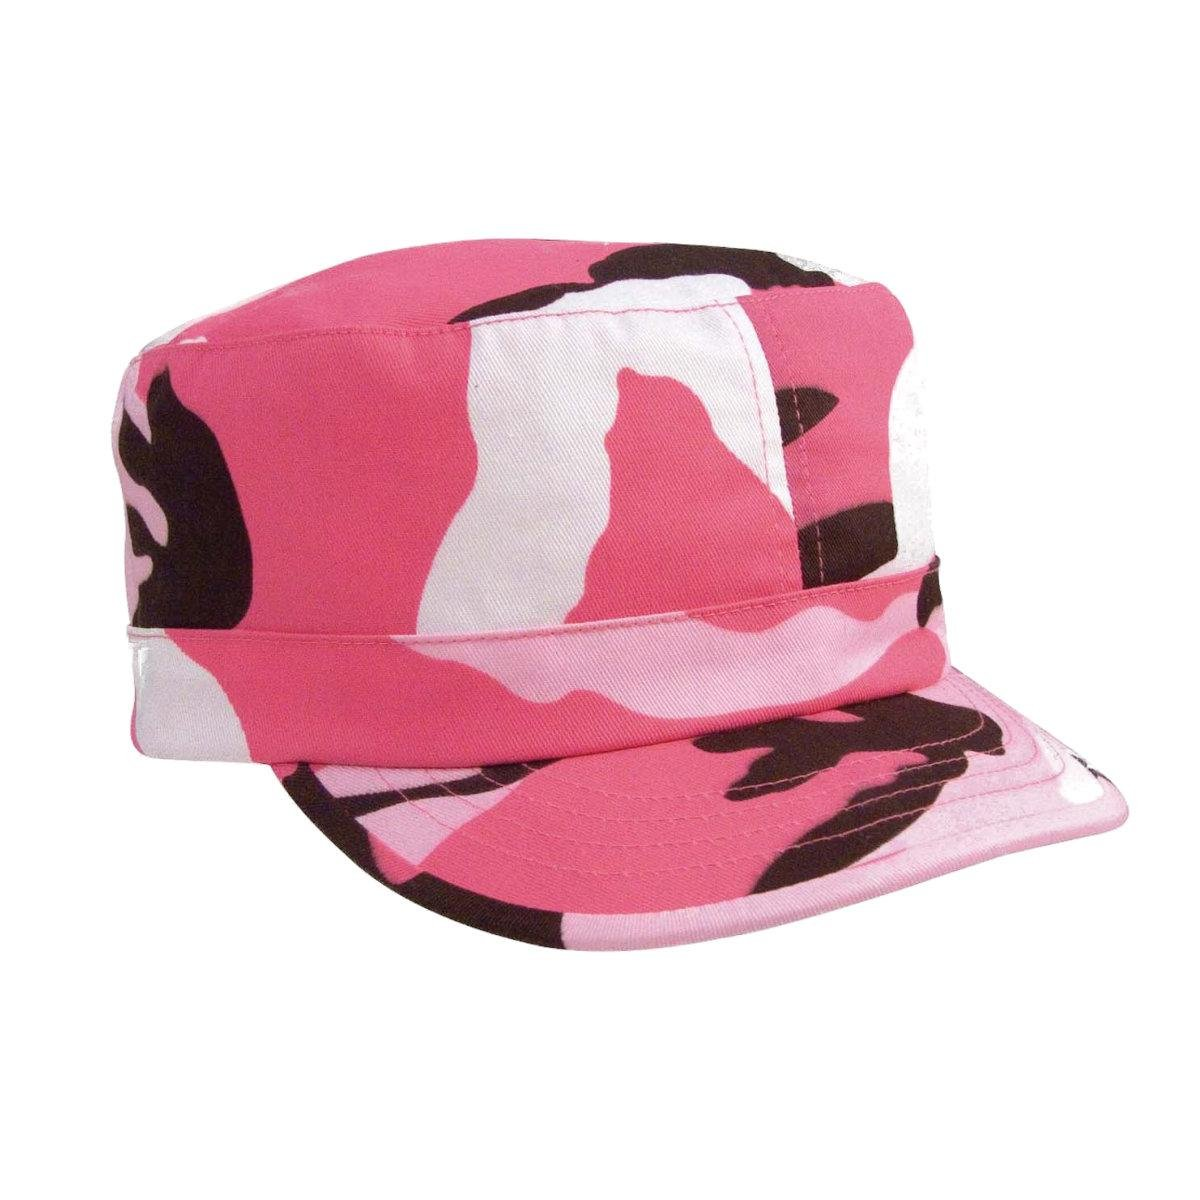 Rothco Women's Adjustable Fatigue Cap Camo 1150